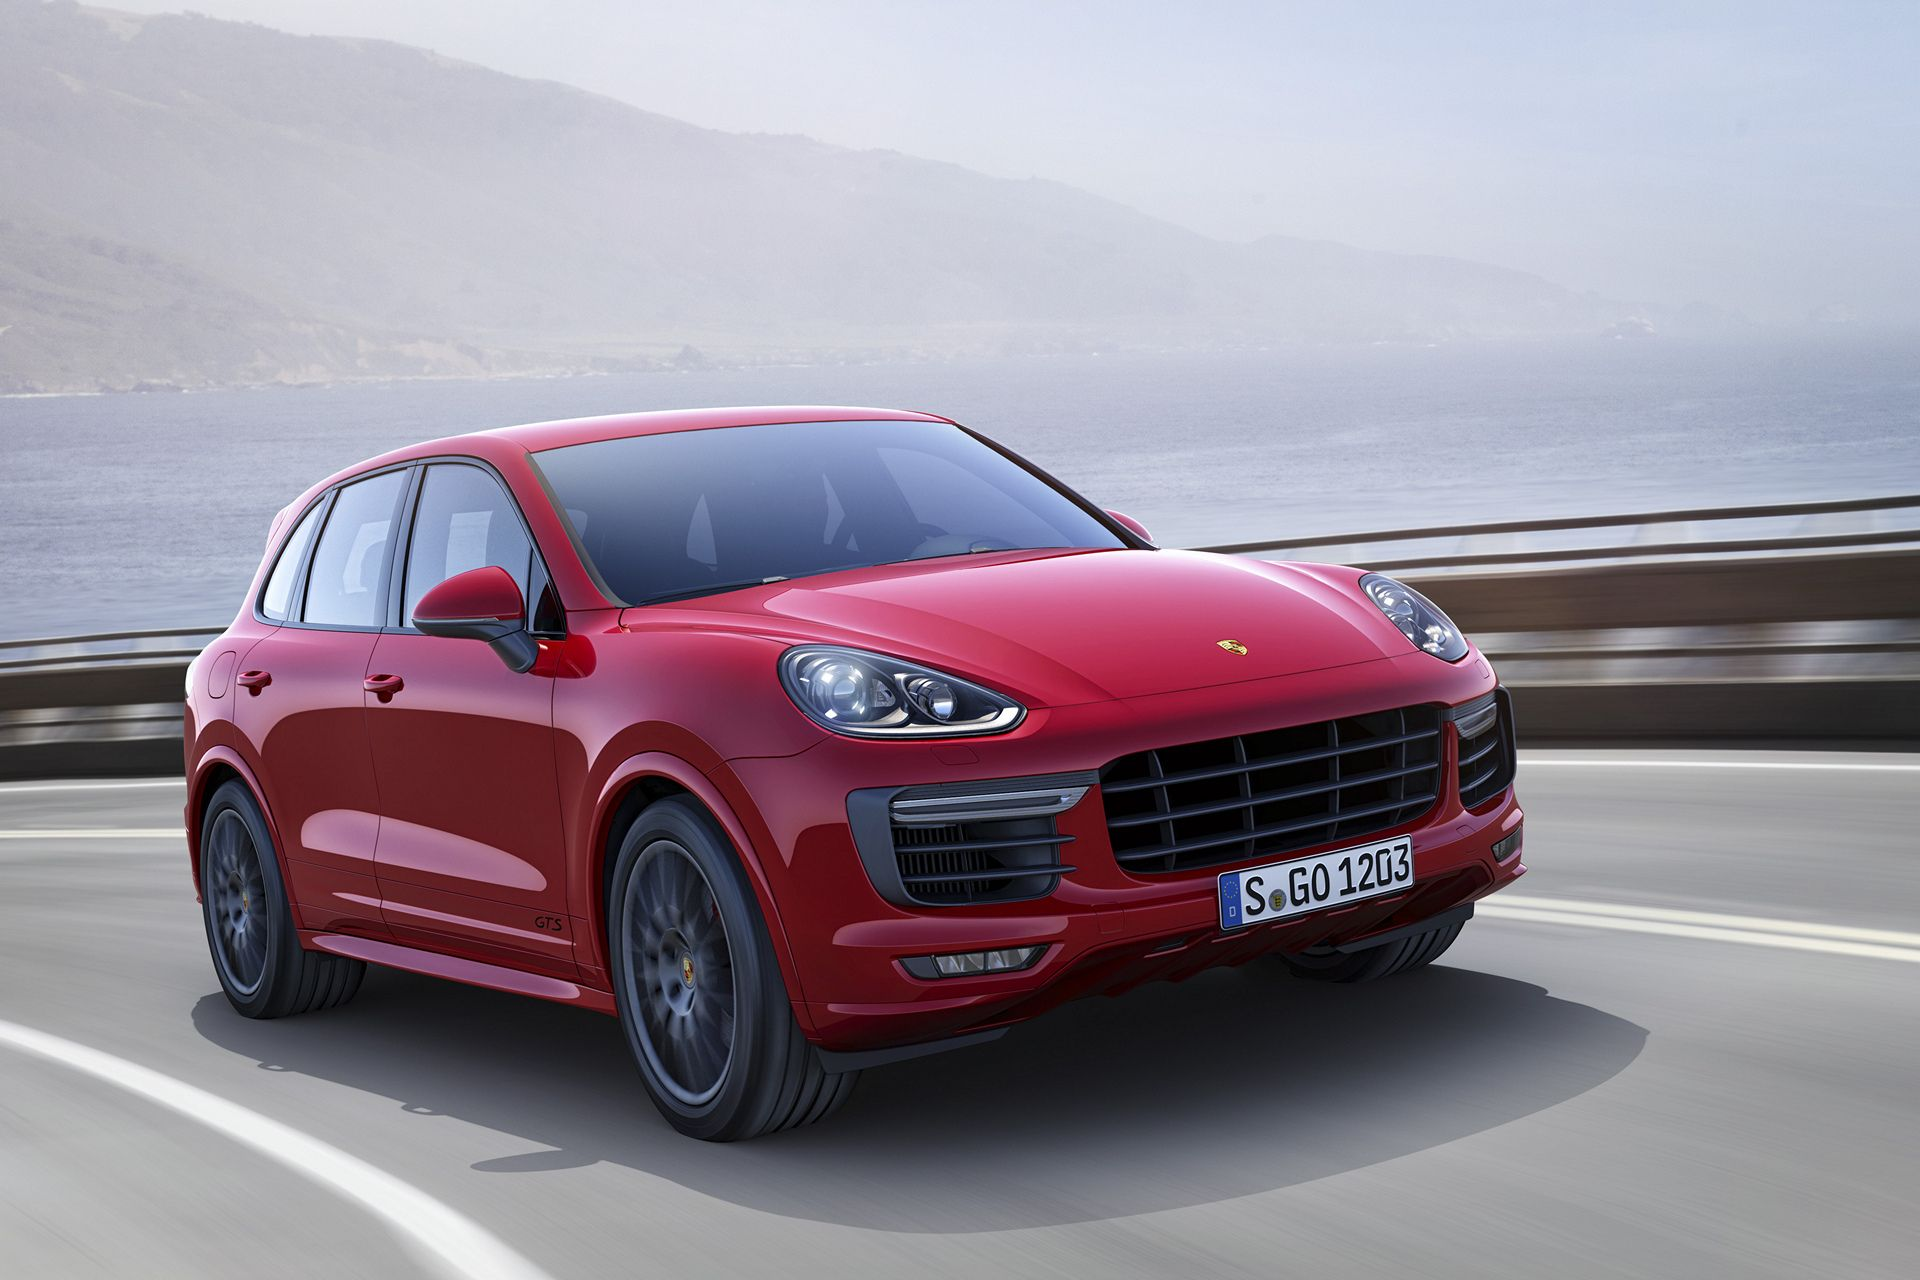 Now in its 14th year of production, the 2016 Porsche Cayenne line-up includes the standard Cayenne, the turbo-diesel Cayenne Diesel, the first plug-in SUV,